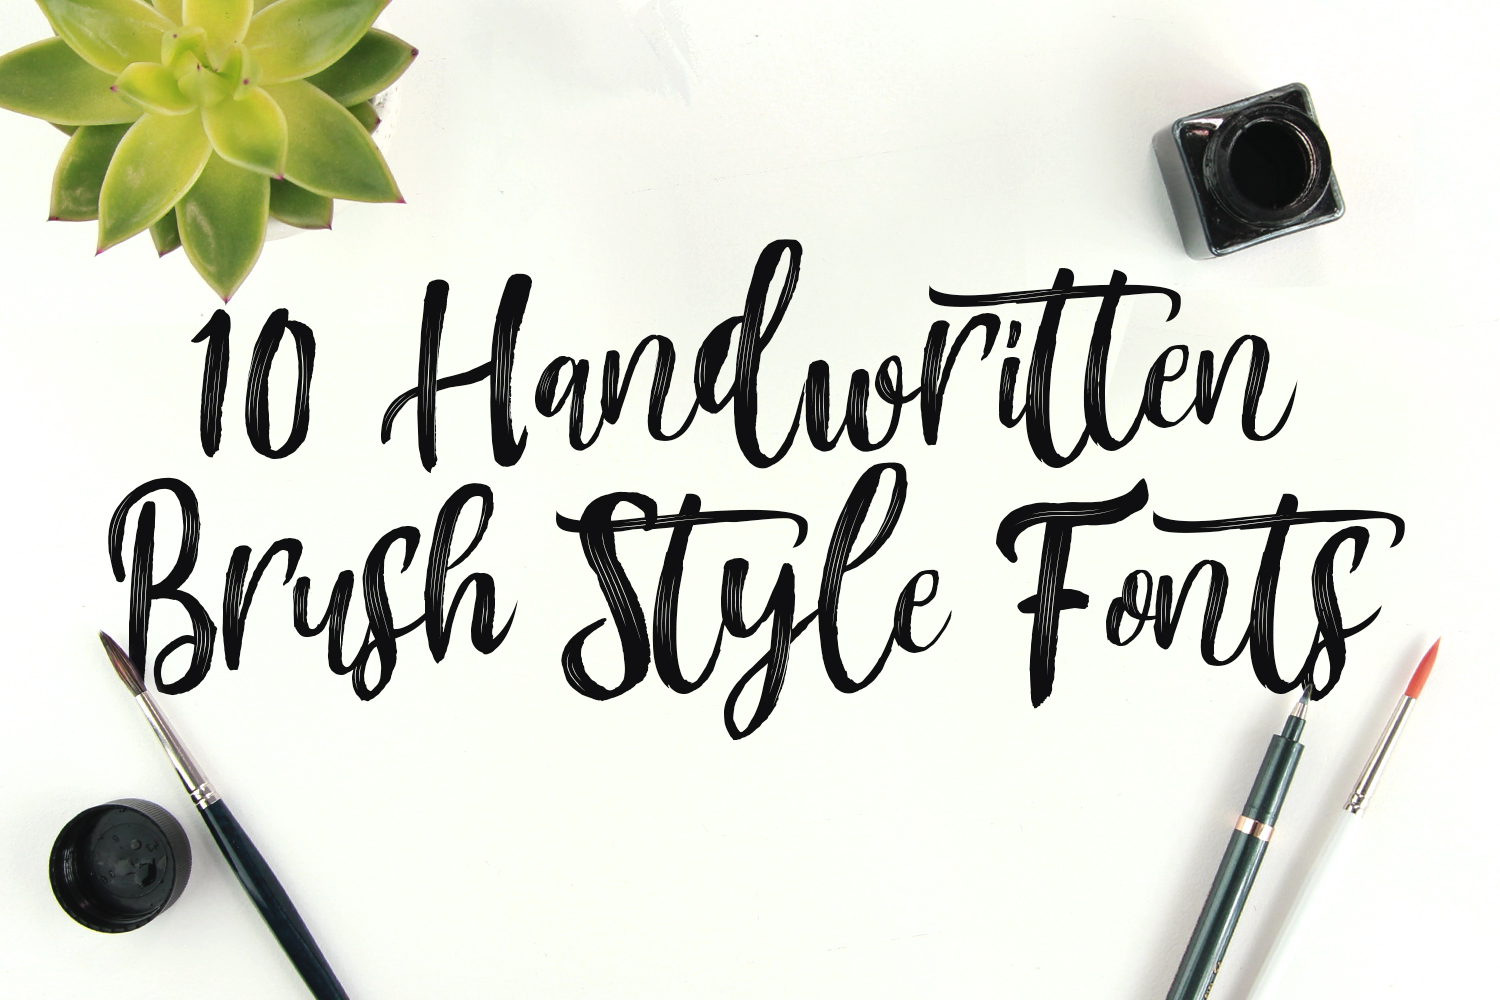 10 Handwritten Brush Style Fonts